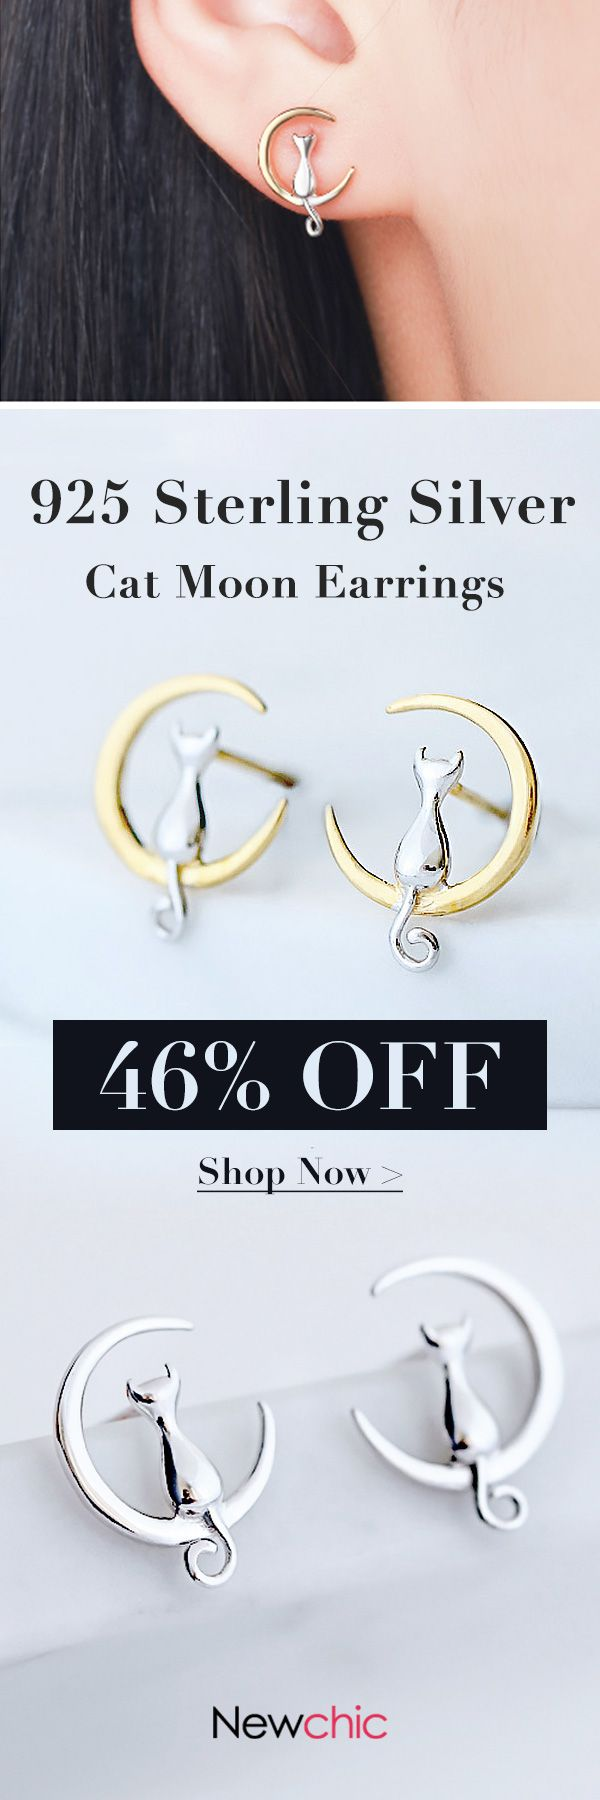 [Newchic Online Shopping] 46%OFF 925 Sterling Silver Sweet Style Cat & Moon Ear Stud